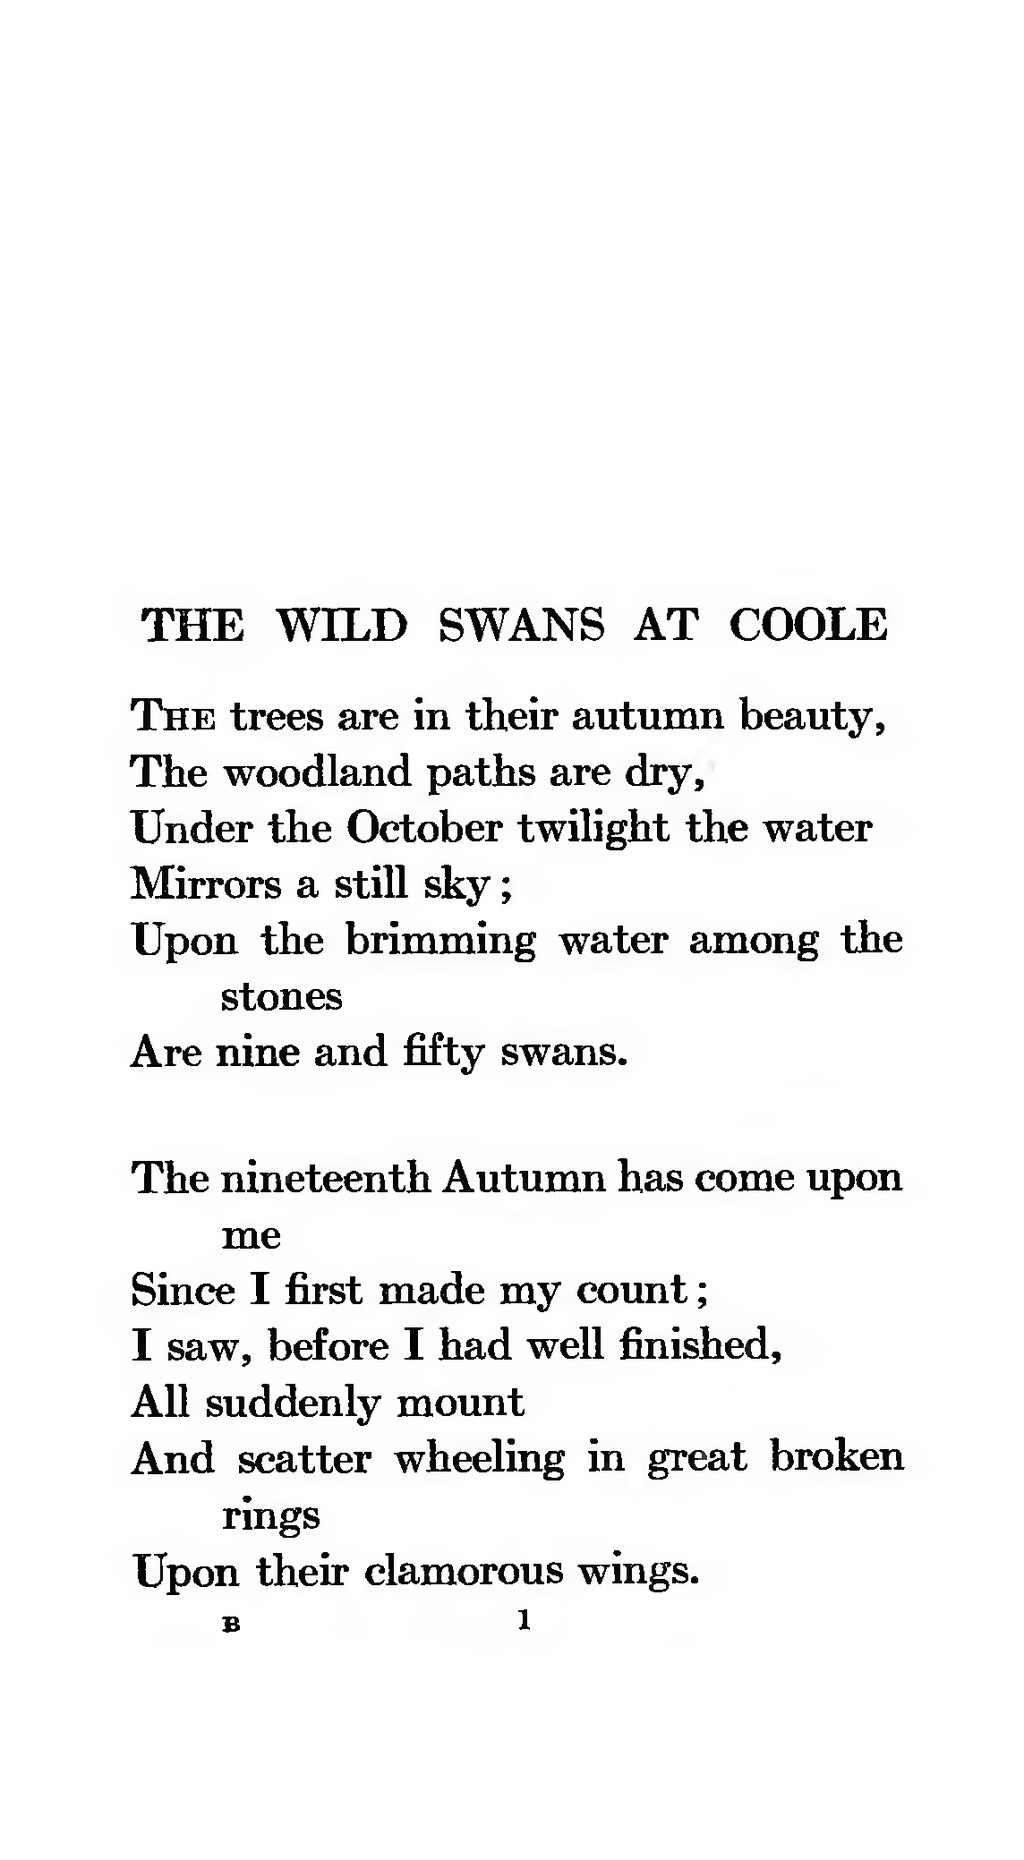 wild swans at coole essay The classic character and the ambivalence from yeats' poems urge the reader's answer to relevant themes in society now this enduring ability of yeats' poetry, influenced by the mystic and ancestral influences is inserted inside the textual integrity drawn from poetic techniques and arrangement when talking relevant contextual issues.